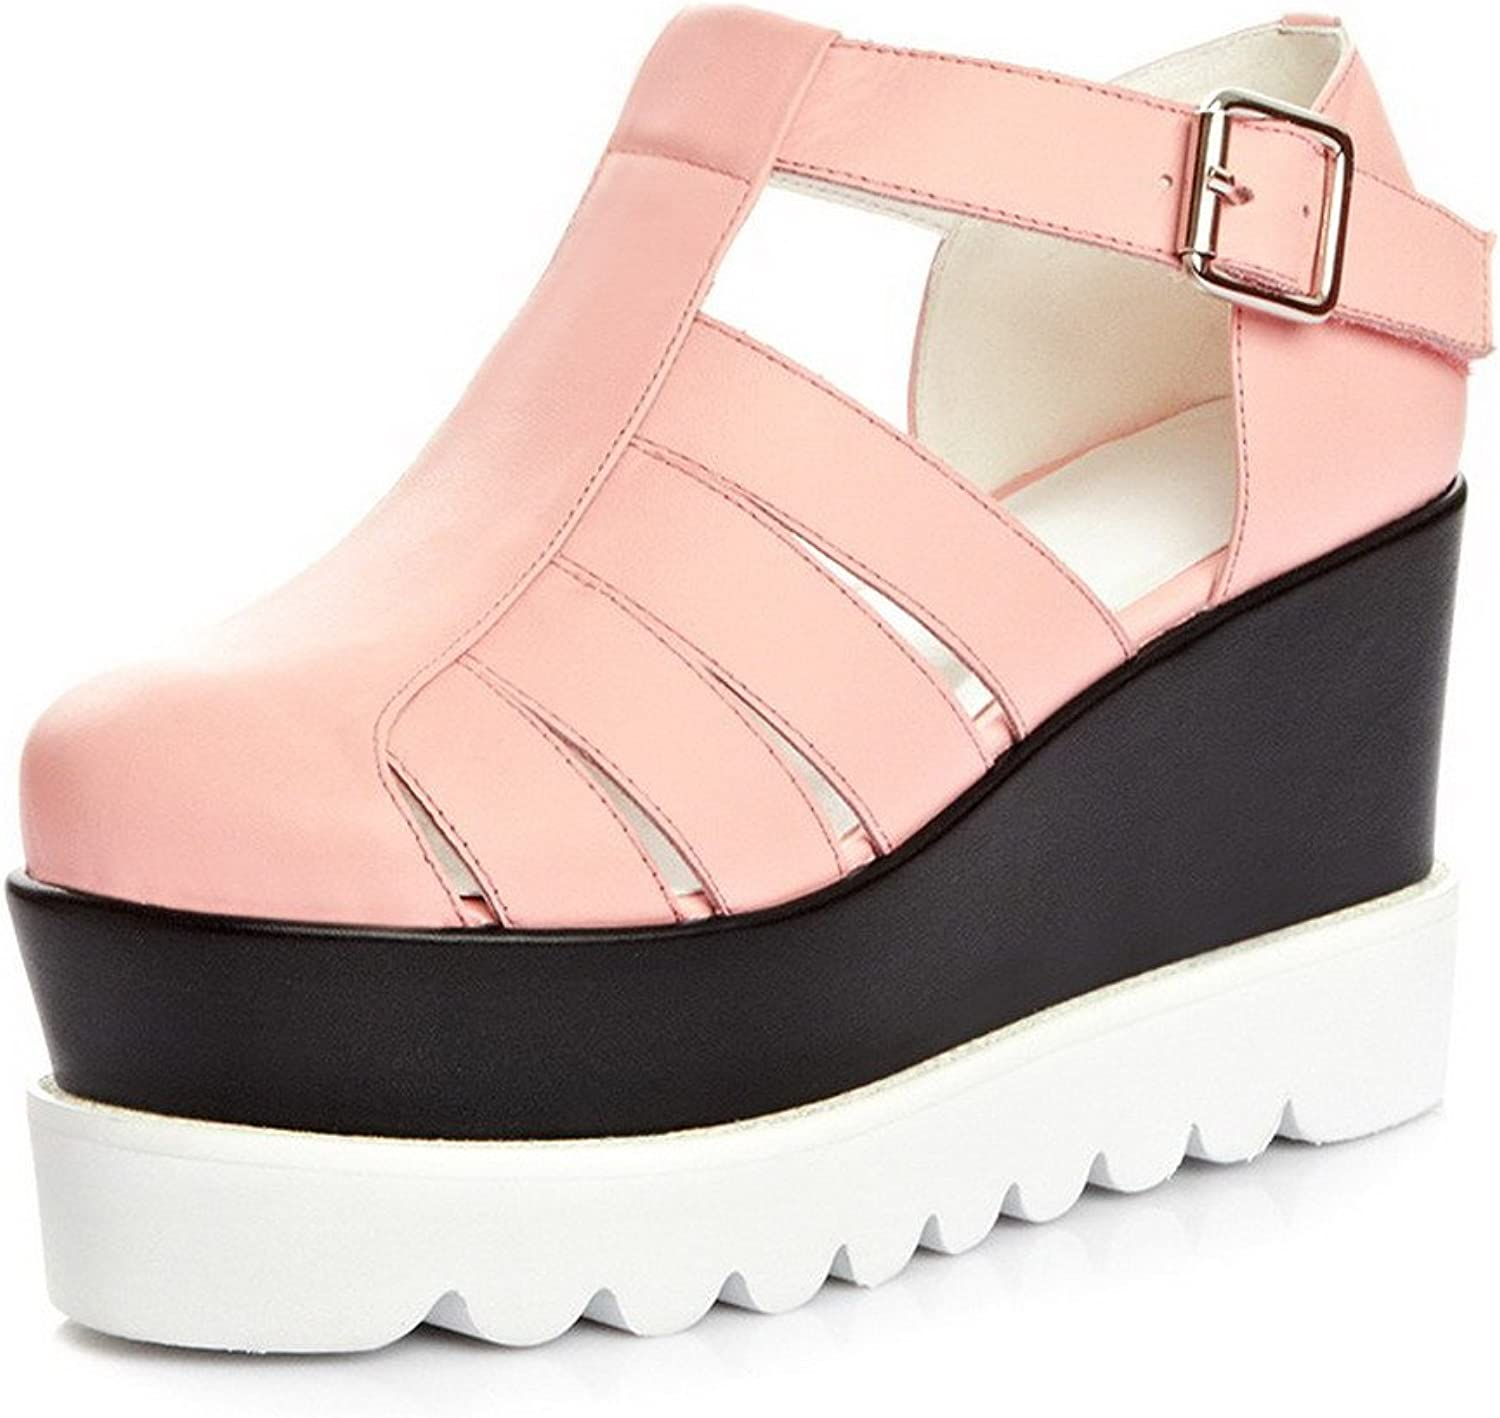 AllhqFashion Women's Round Closed Toe Cow Leather High Heels Solid Sandals with Wedge and Hollow Out